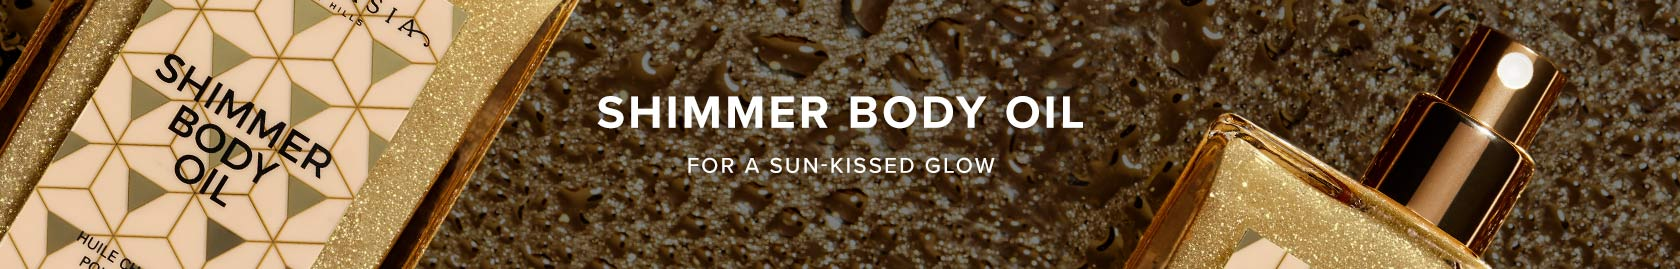 Shimmer Body Oil - For a Sun-Kissed Glow